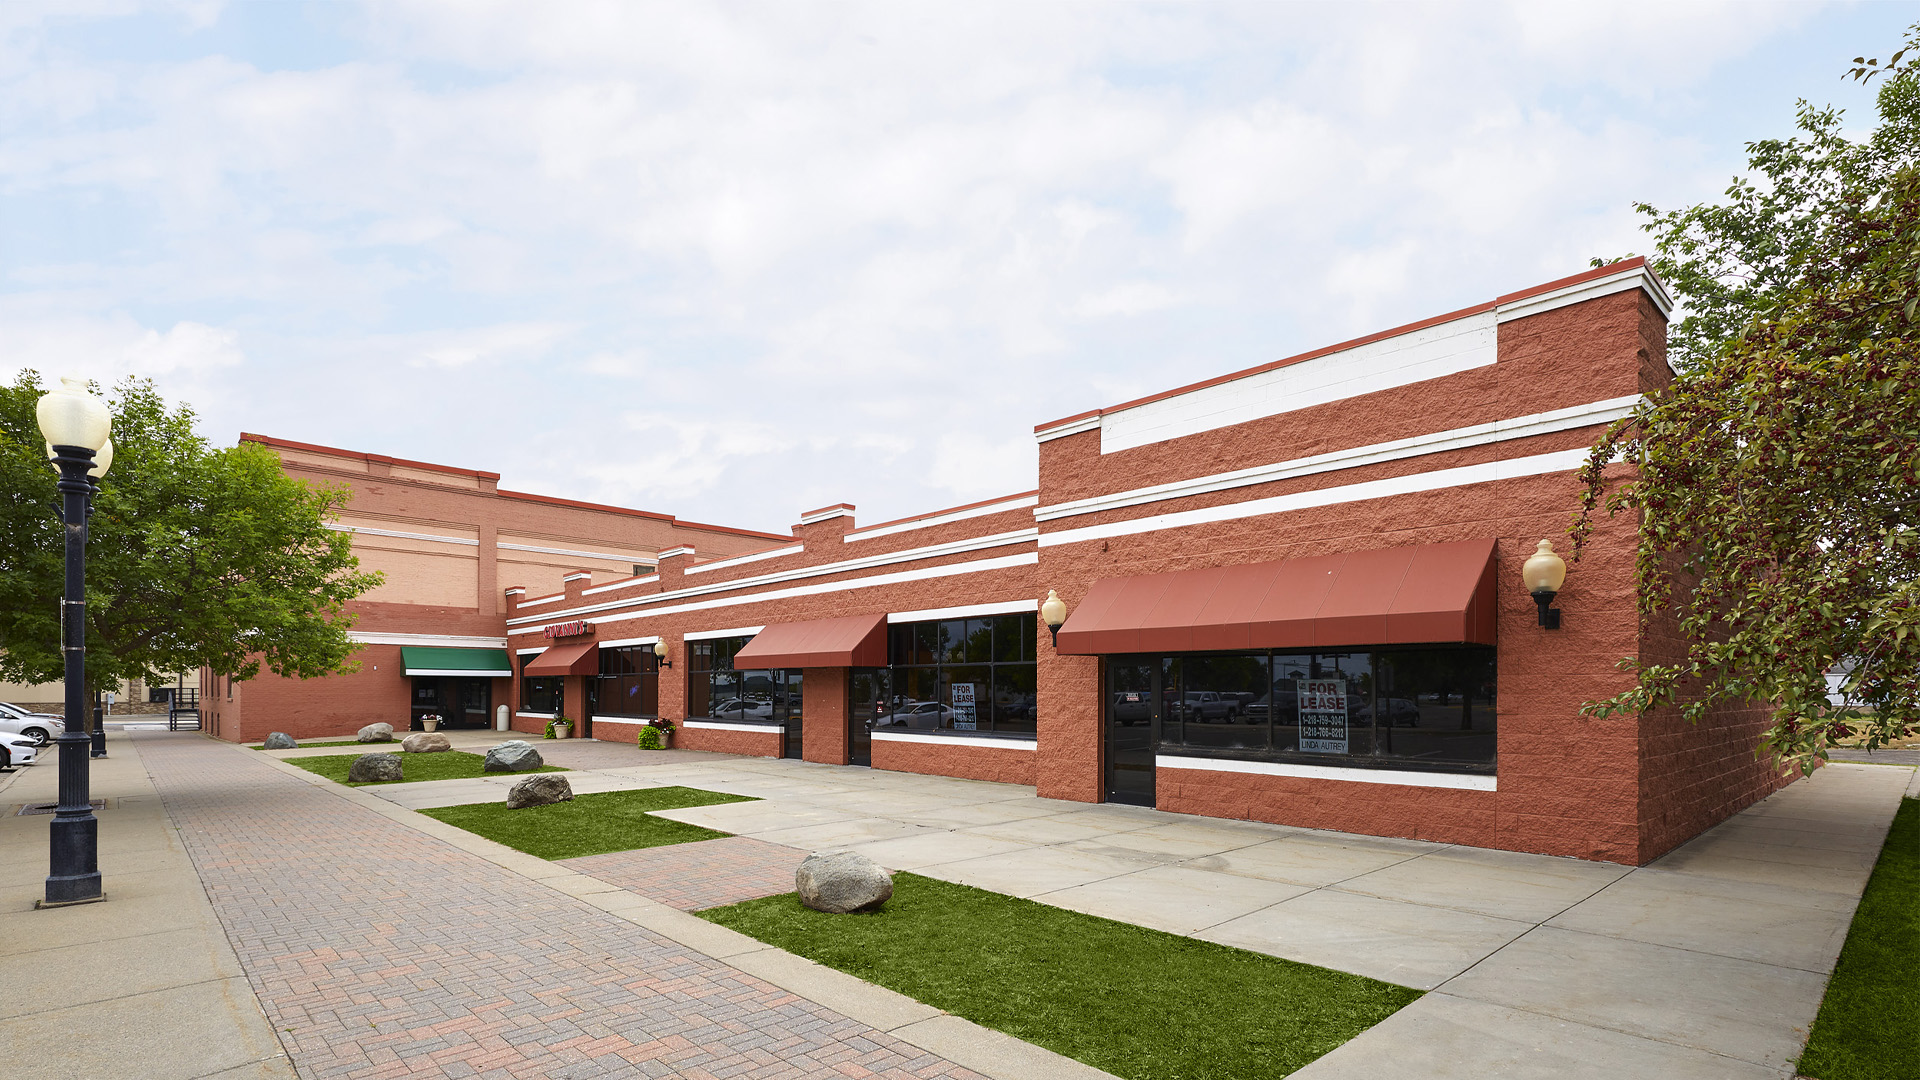 Union Square Shopping Center Bemidji MN small retail strip connected Mayflower office building